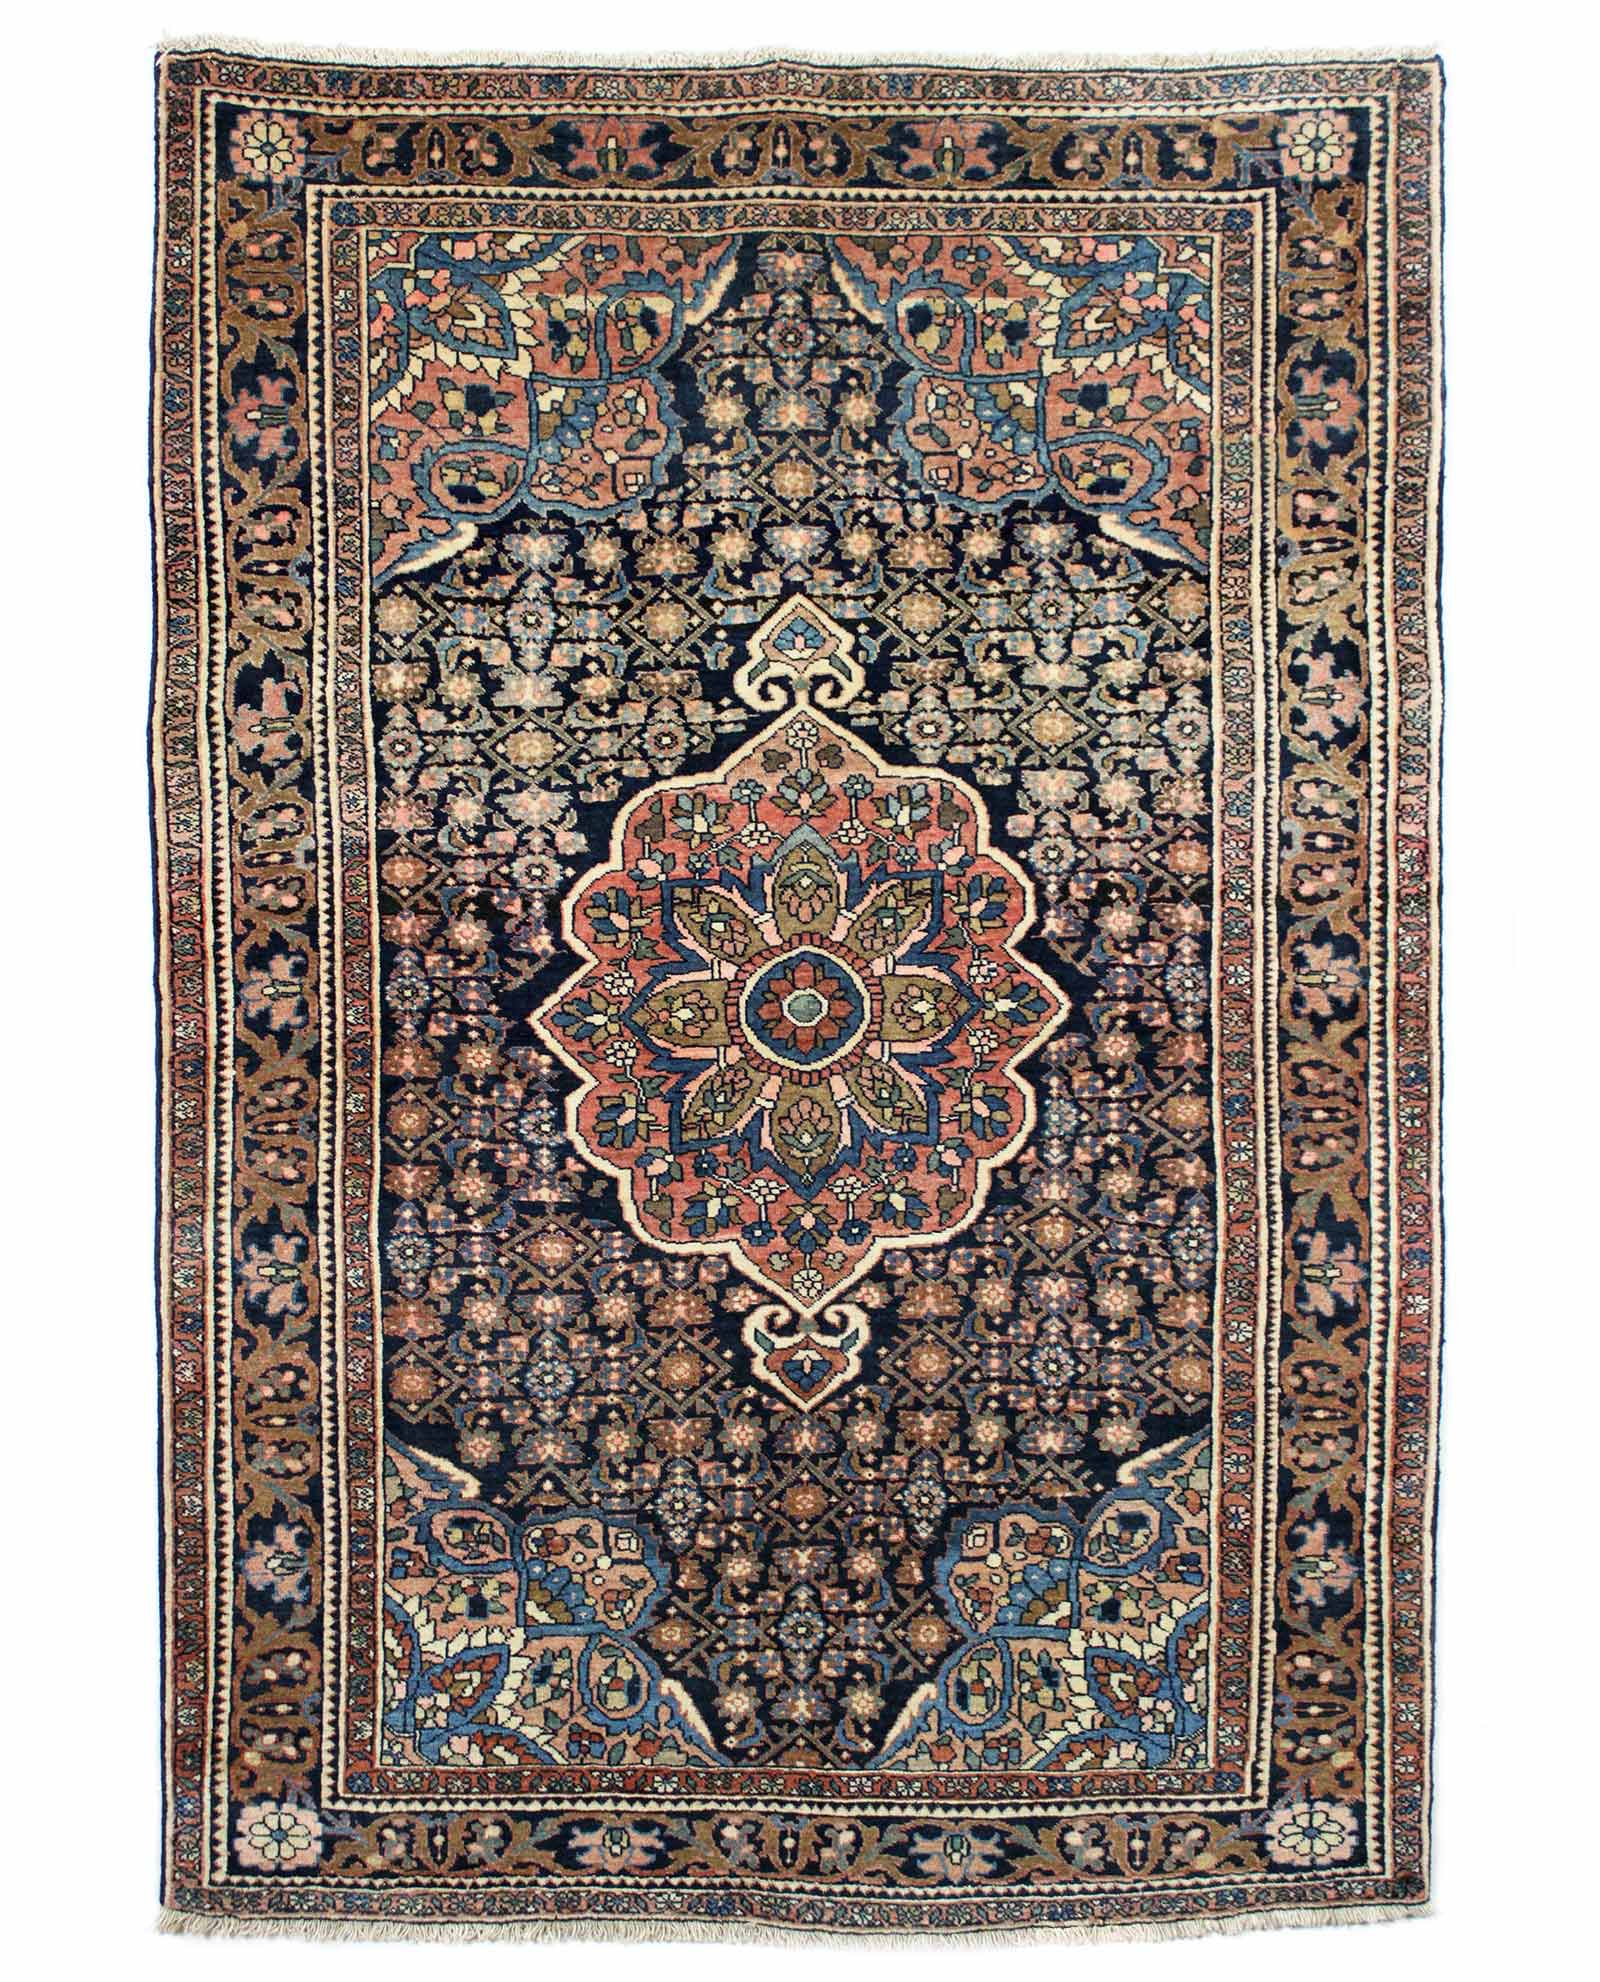 tapis persan bijar 15115 iranian carpet. Black Bedroom Furniture Sets. Home Design Ideas